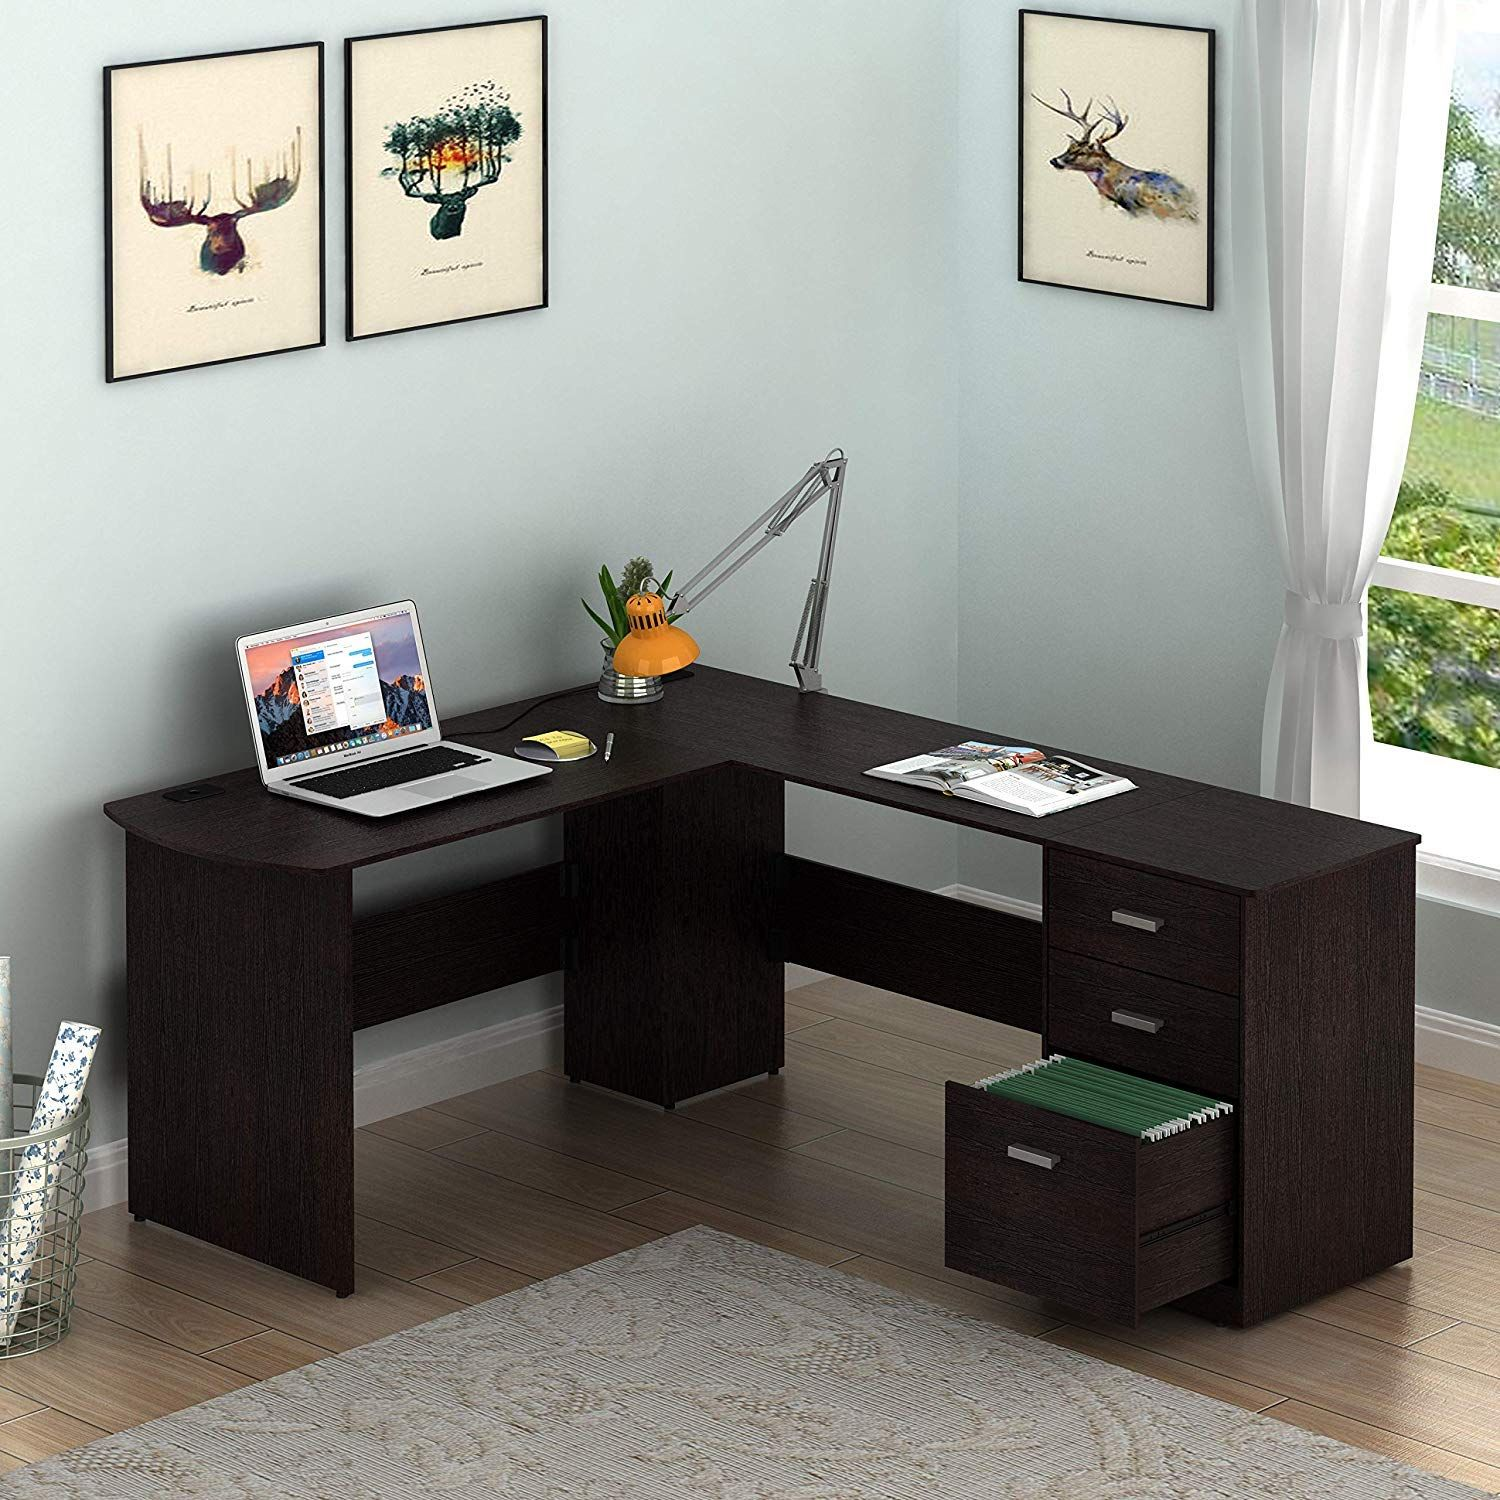 Shw L Shaped Home Office Wood Corner Desk With 3 Drawers Read More At The Image Link It Is An Affiliate Wood Corner Desk Home Office Furniture Corner Desk